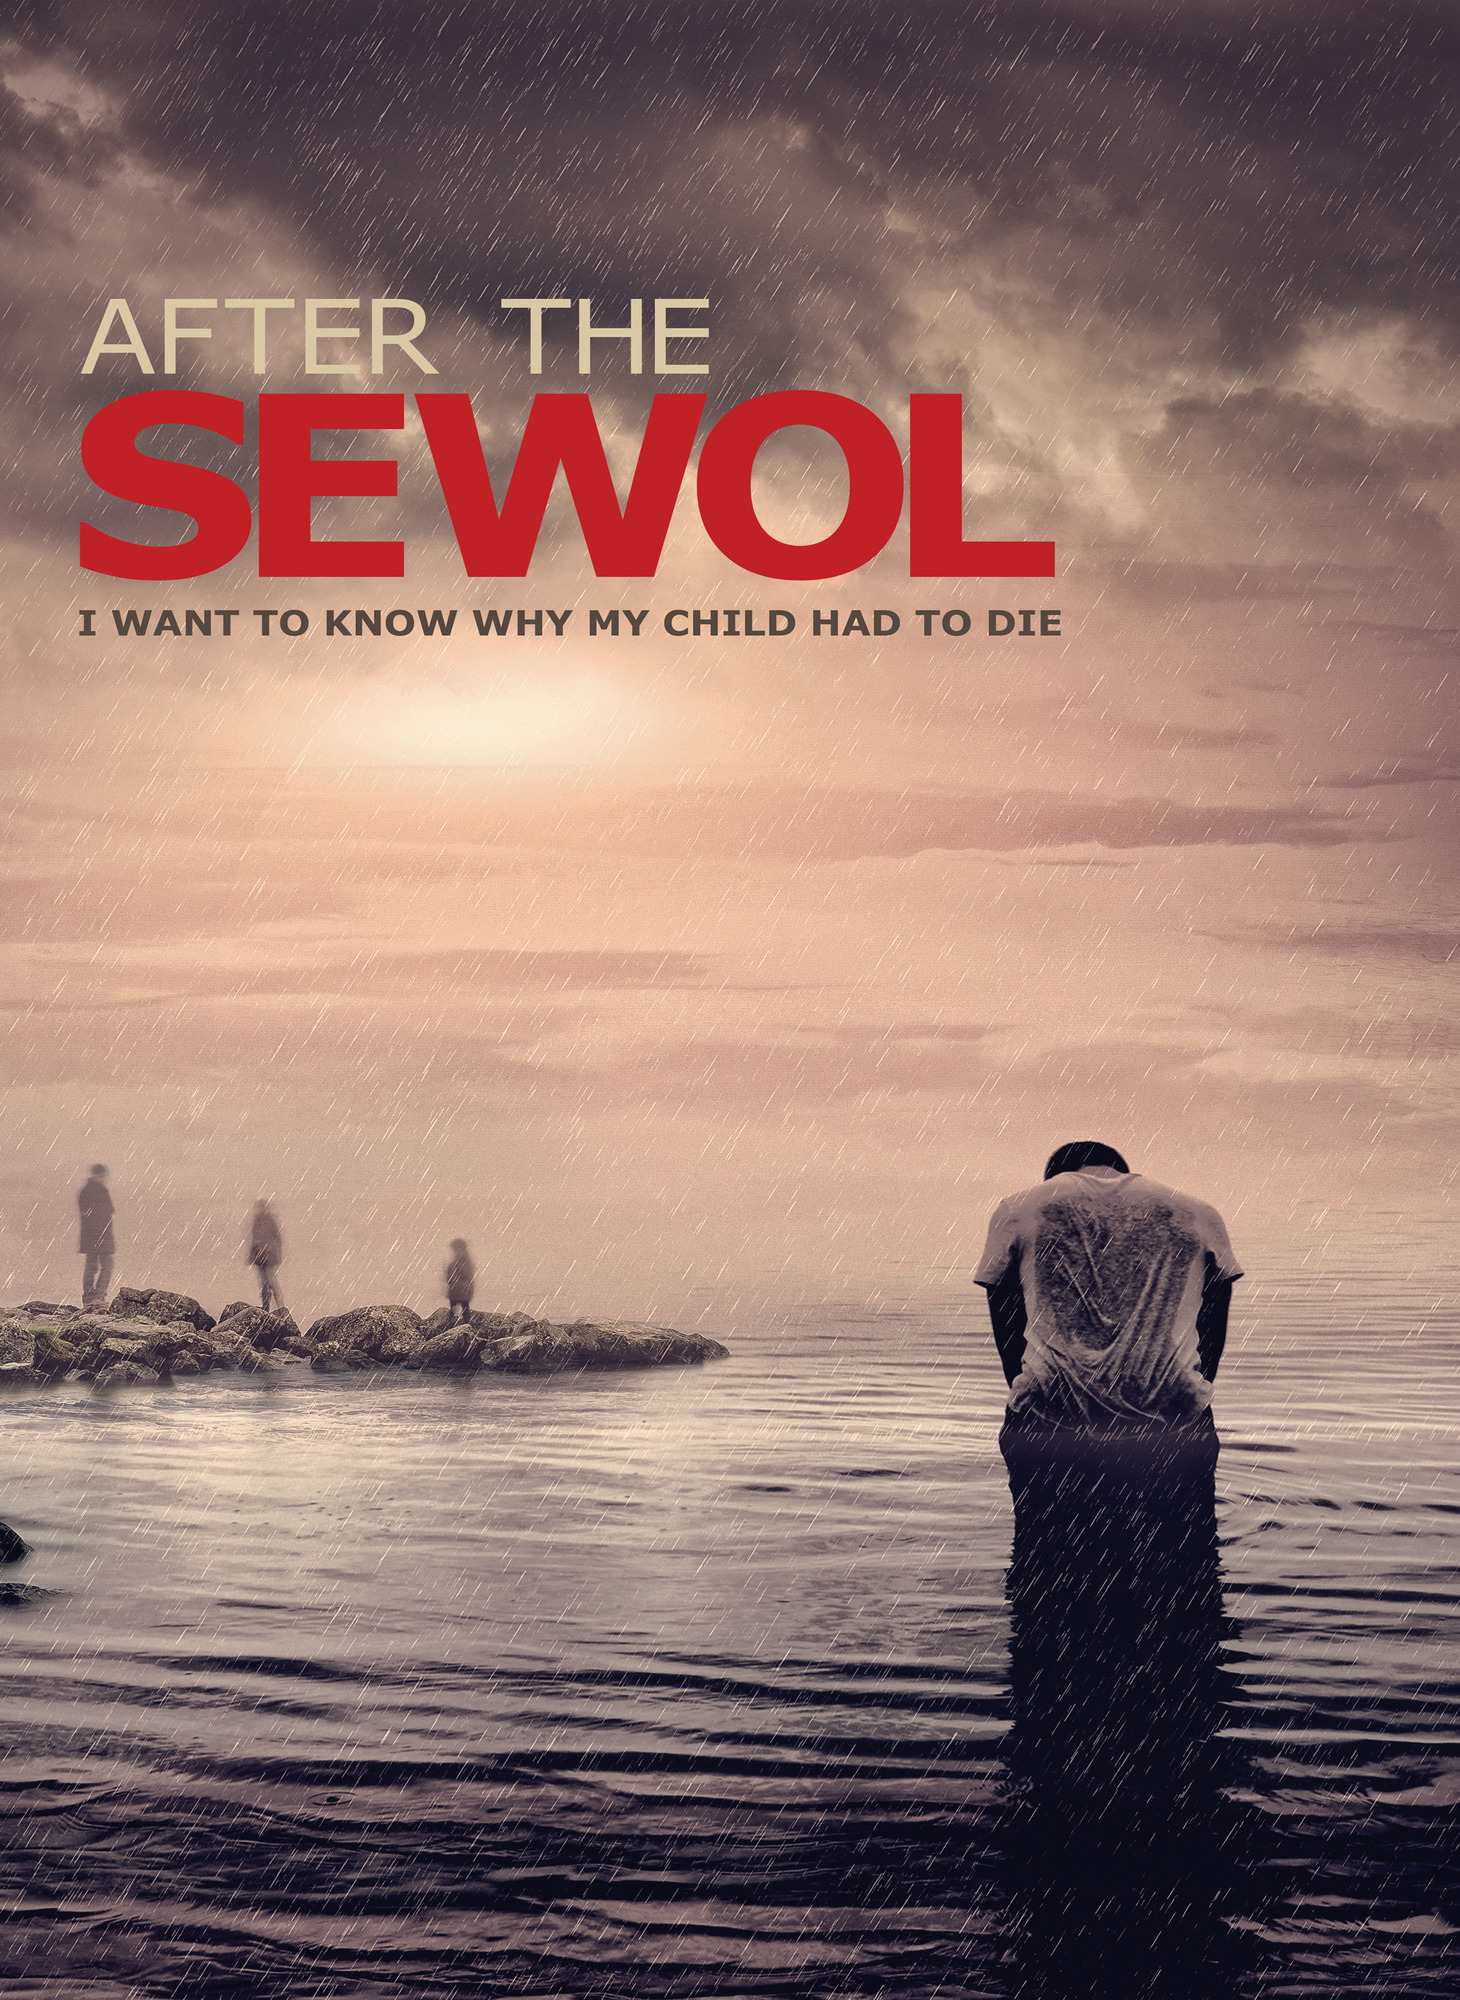 After the Sewol